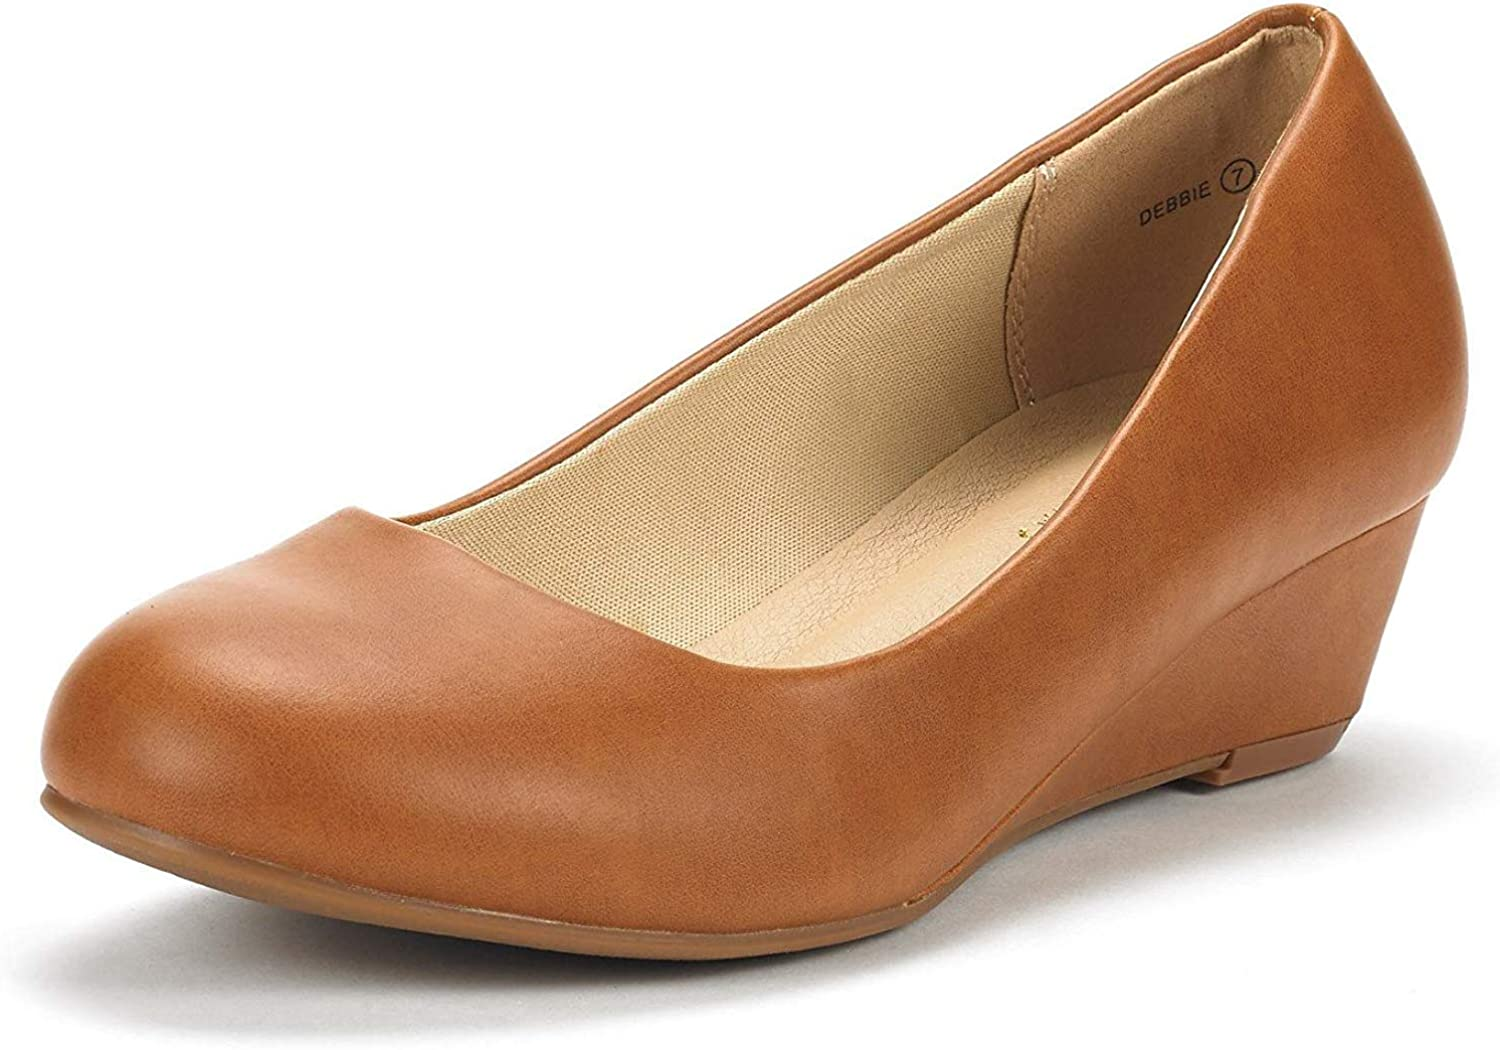 The Best Miracle 228 Shoes For Women